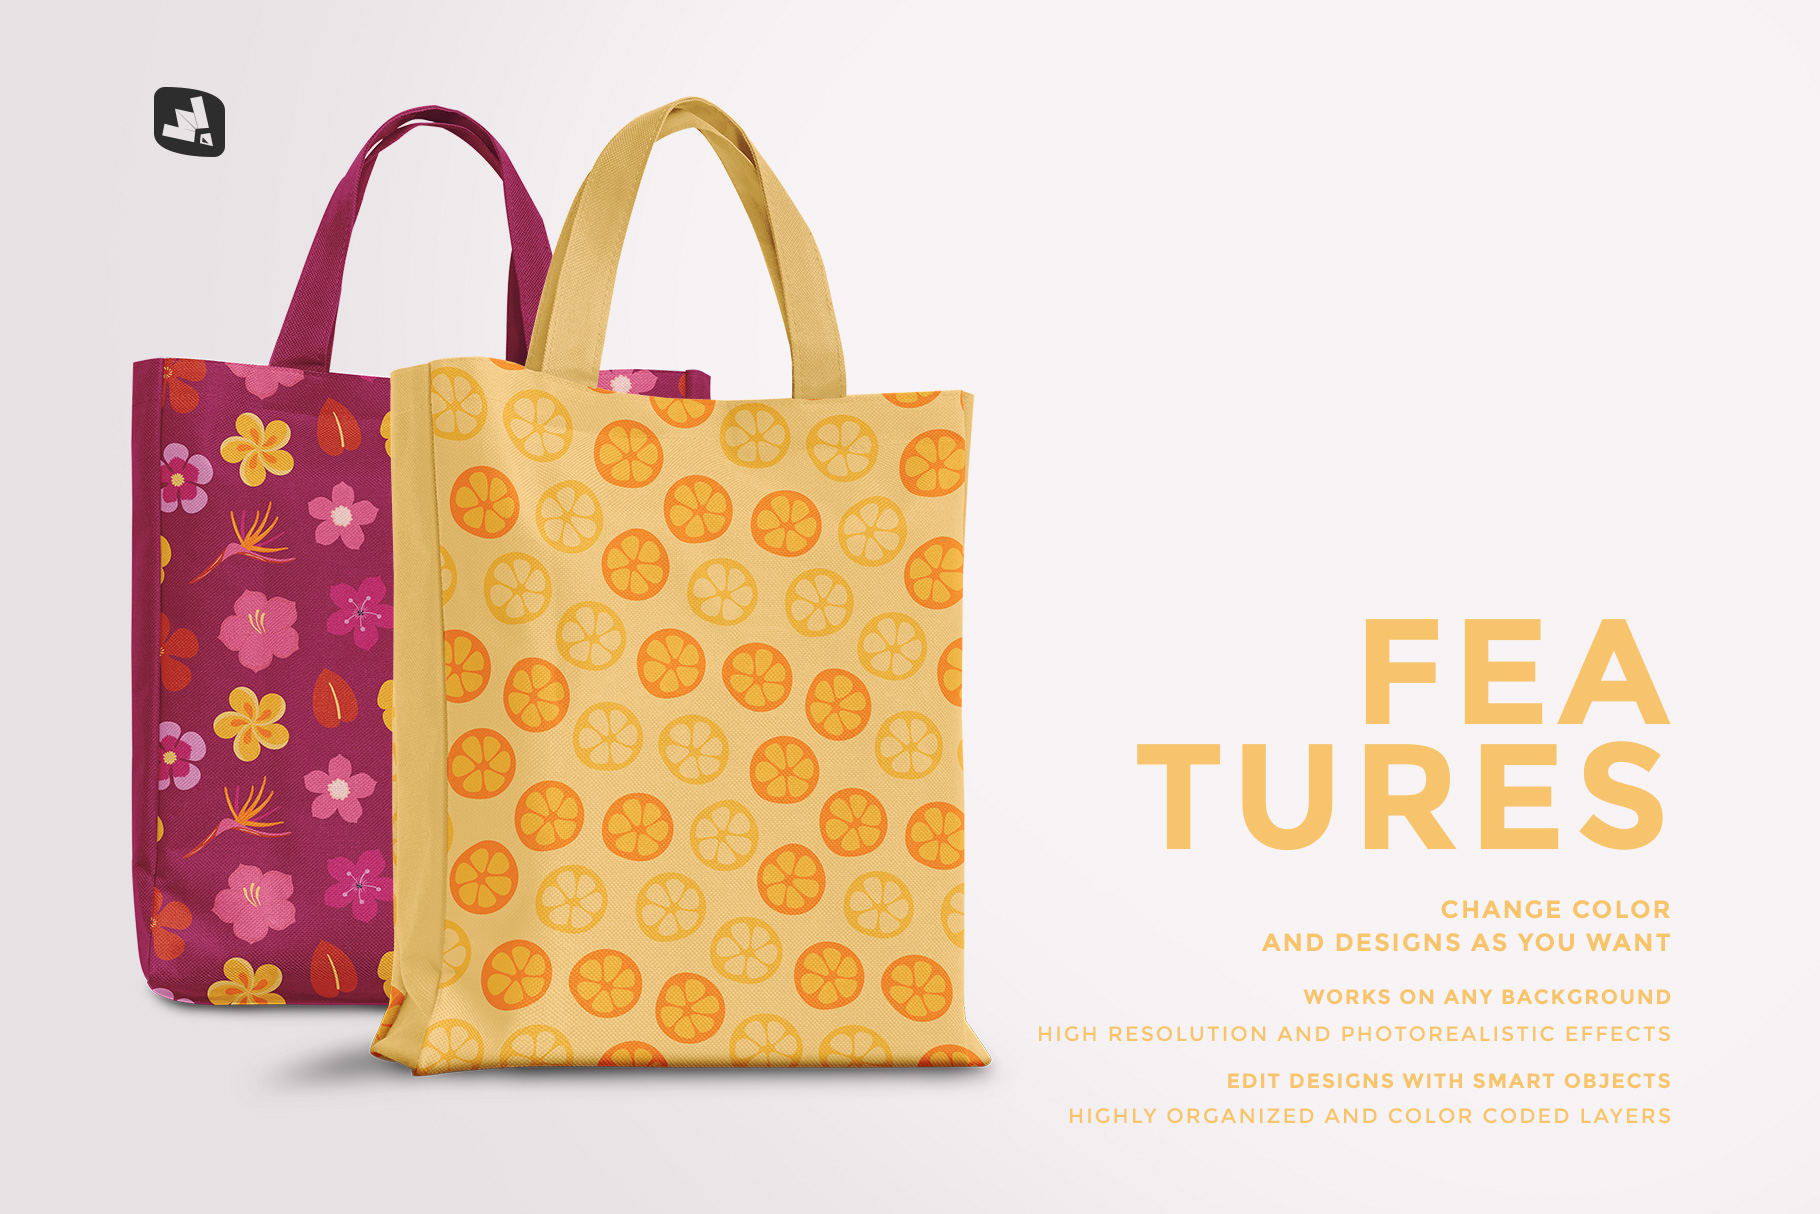 features of the front view canvas bag mockup